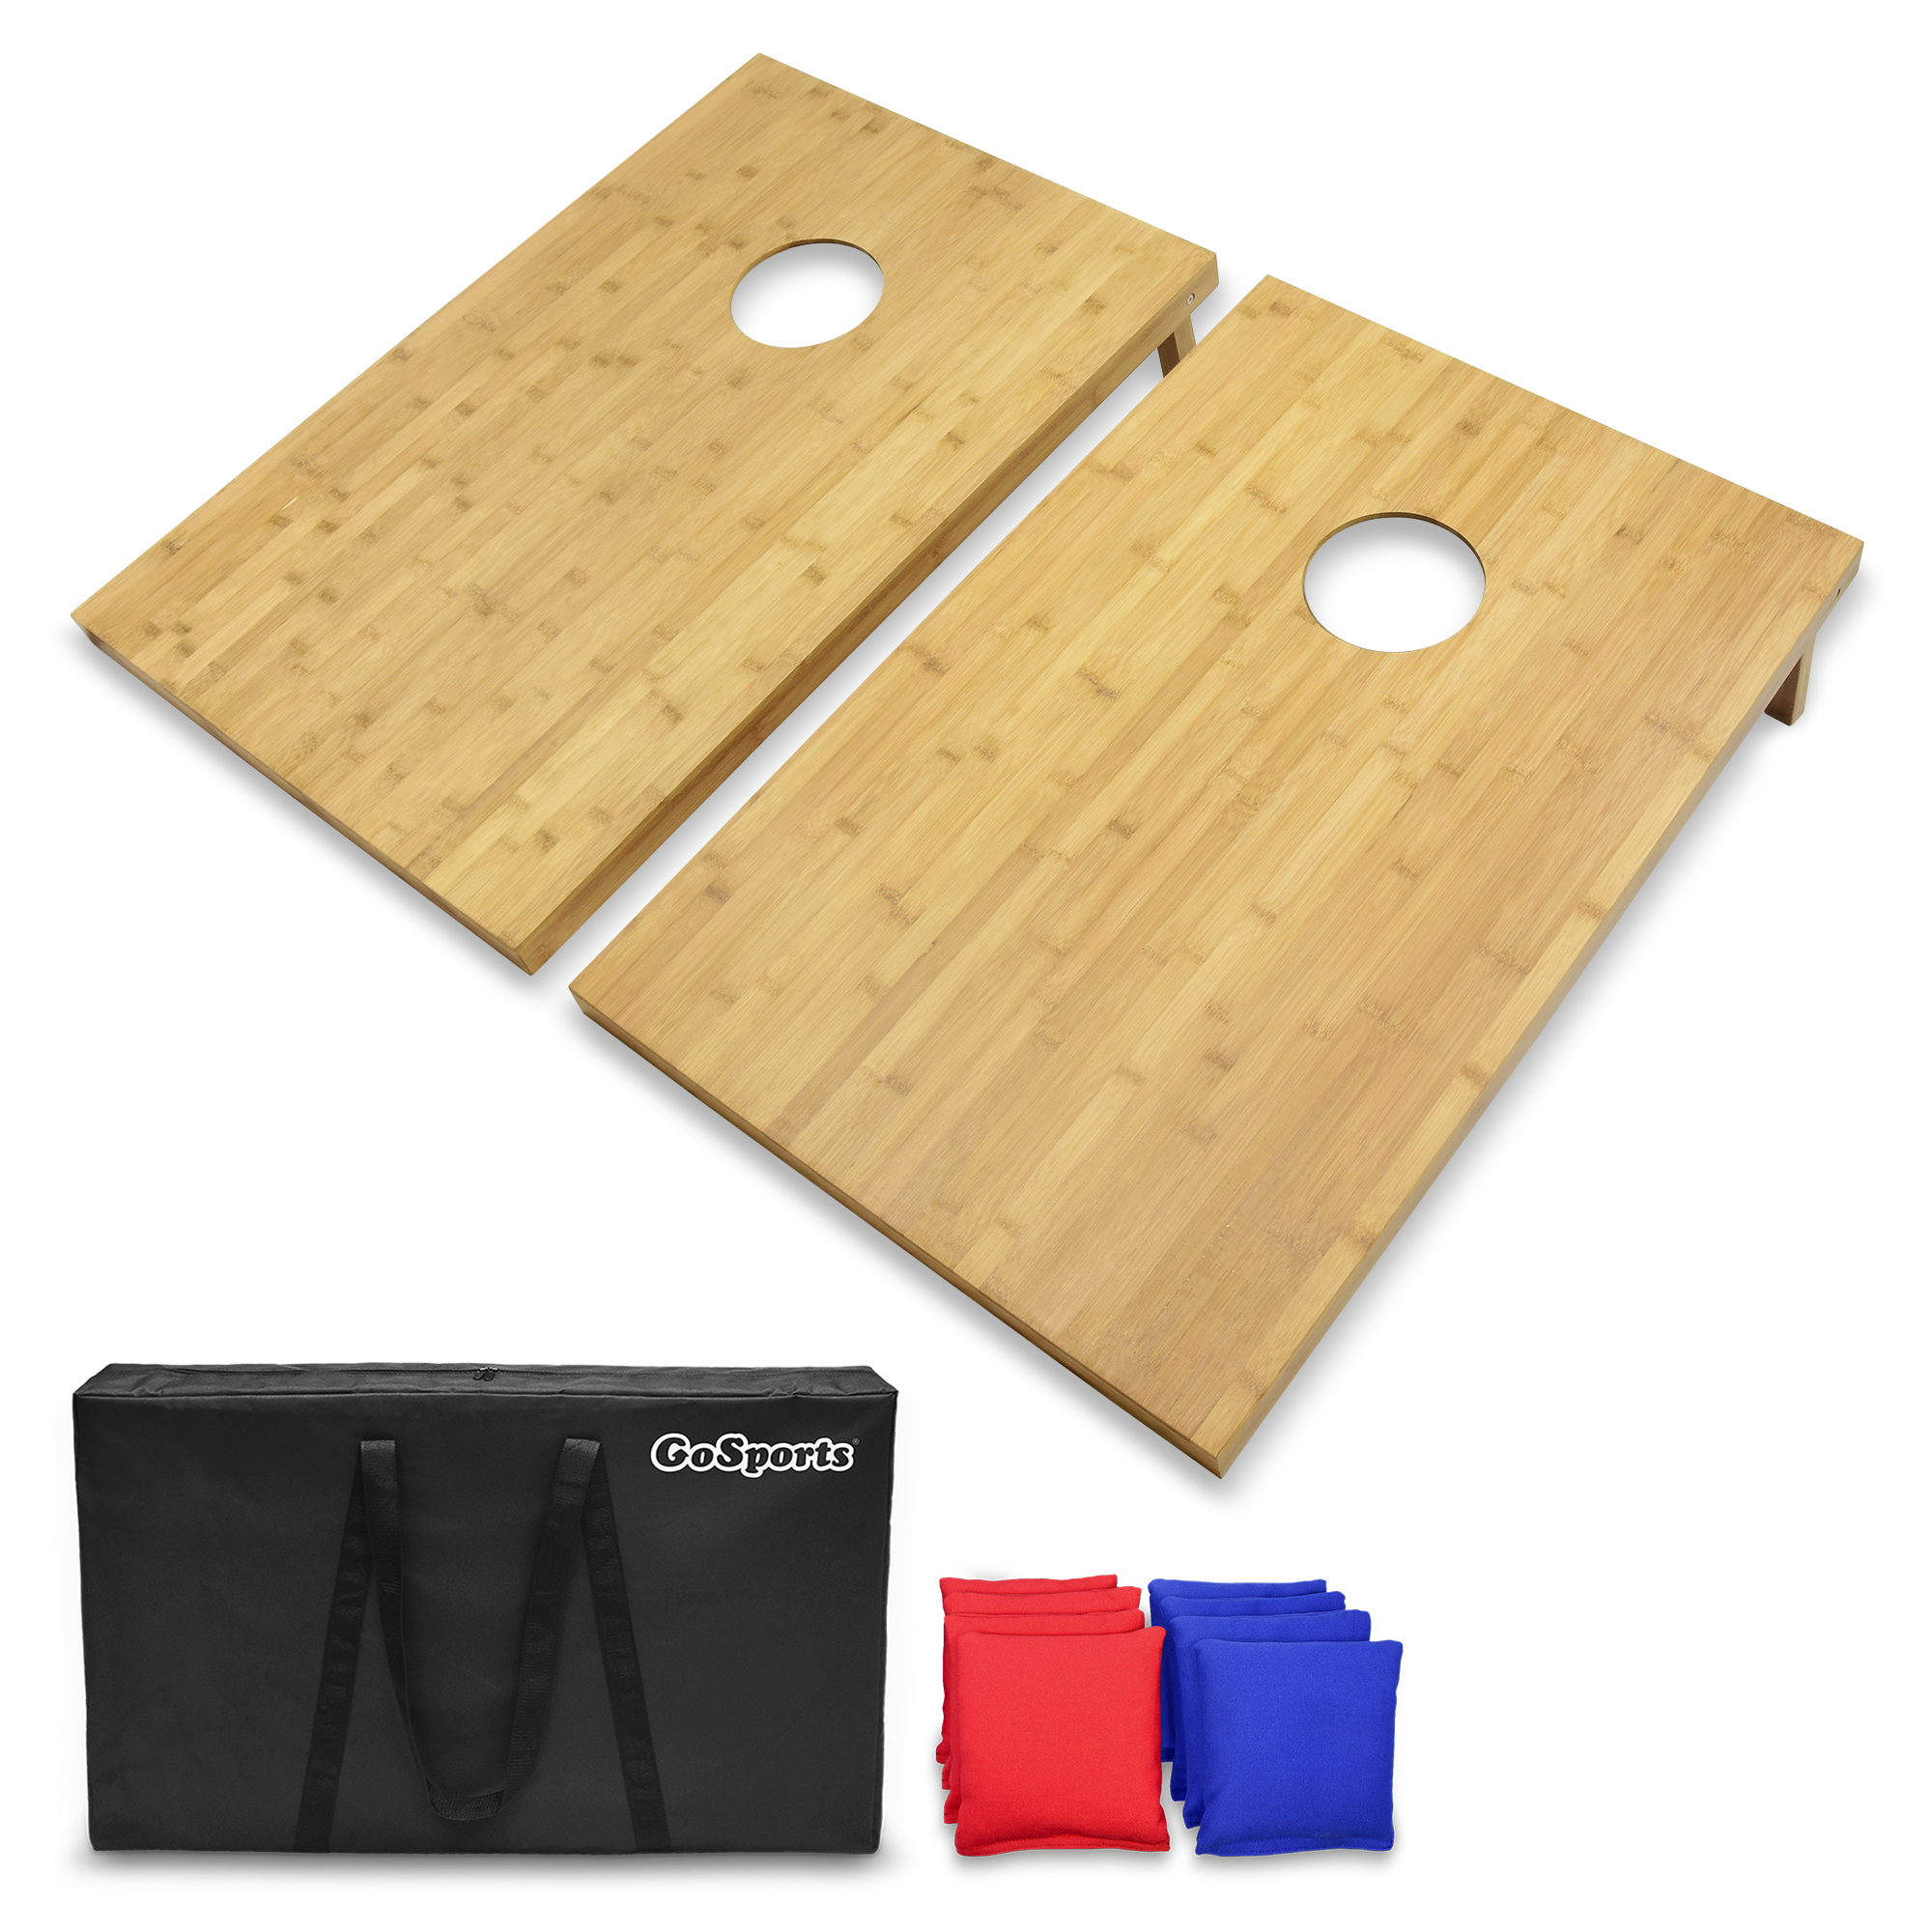 GoSports 3' x 2' Bamboo Cornhole Set with 8 Beanbags & Carrying Case Premium All Weather... by P&P Imports; LLC